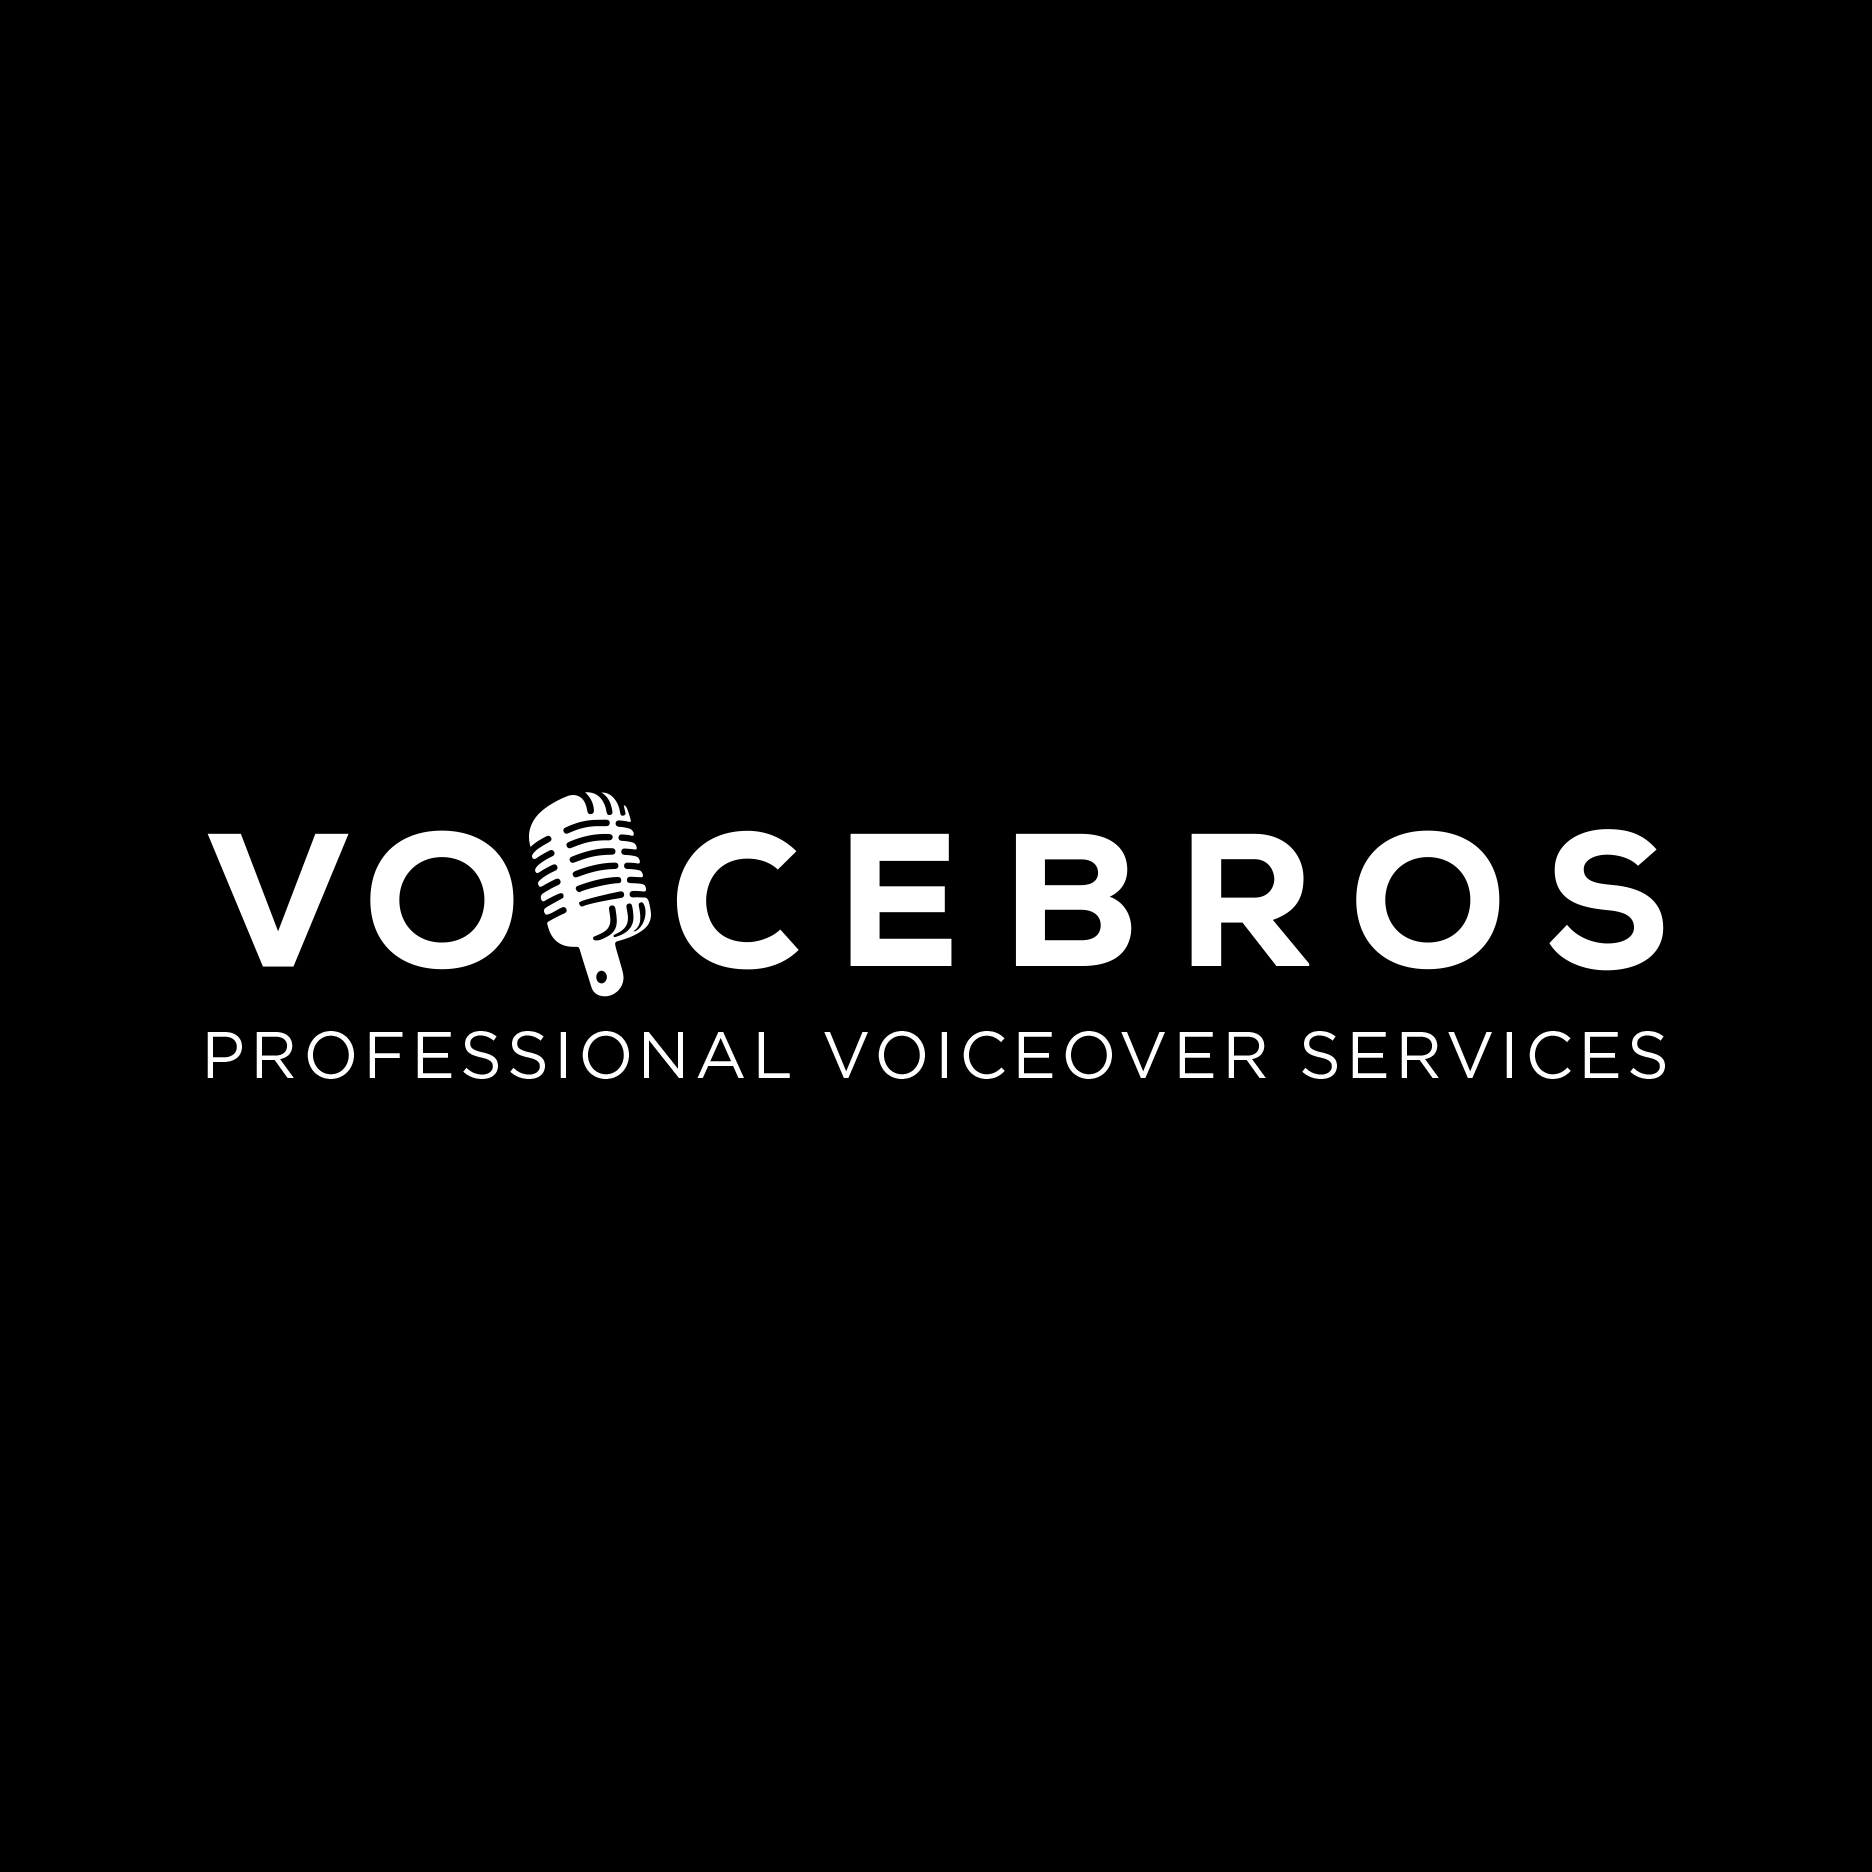 rory acton burnell is a voice over actor